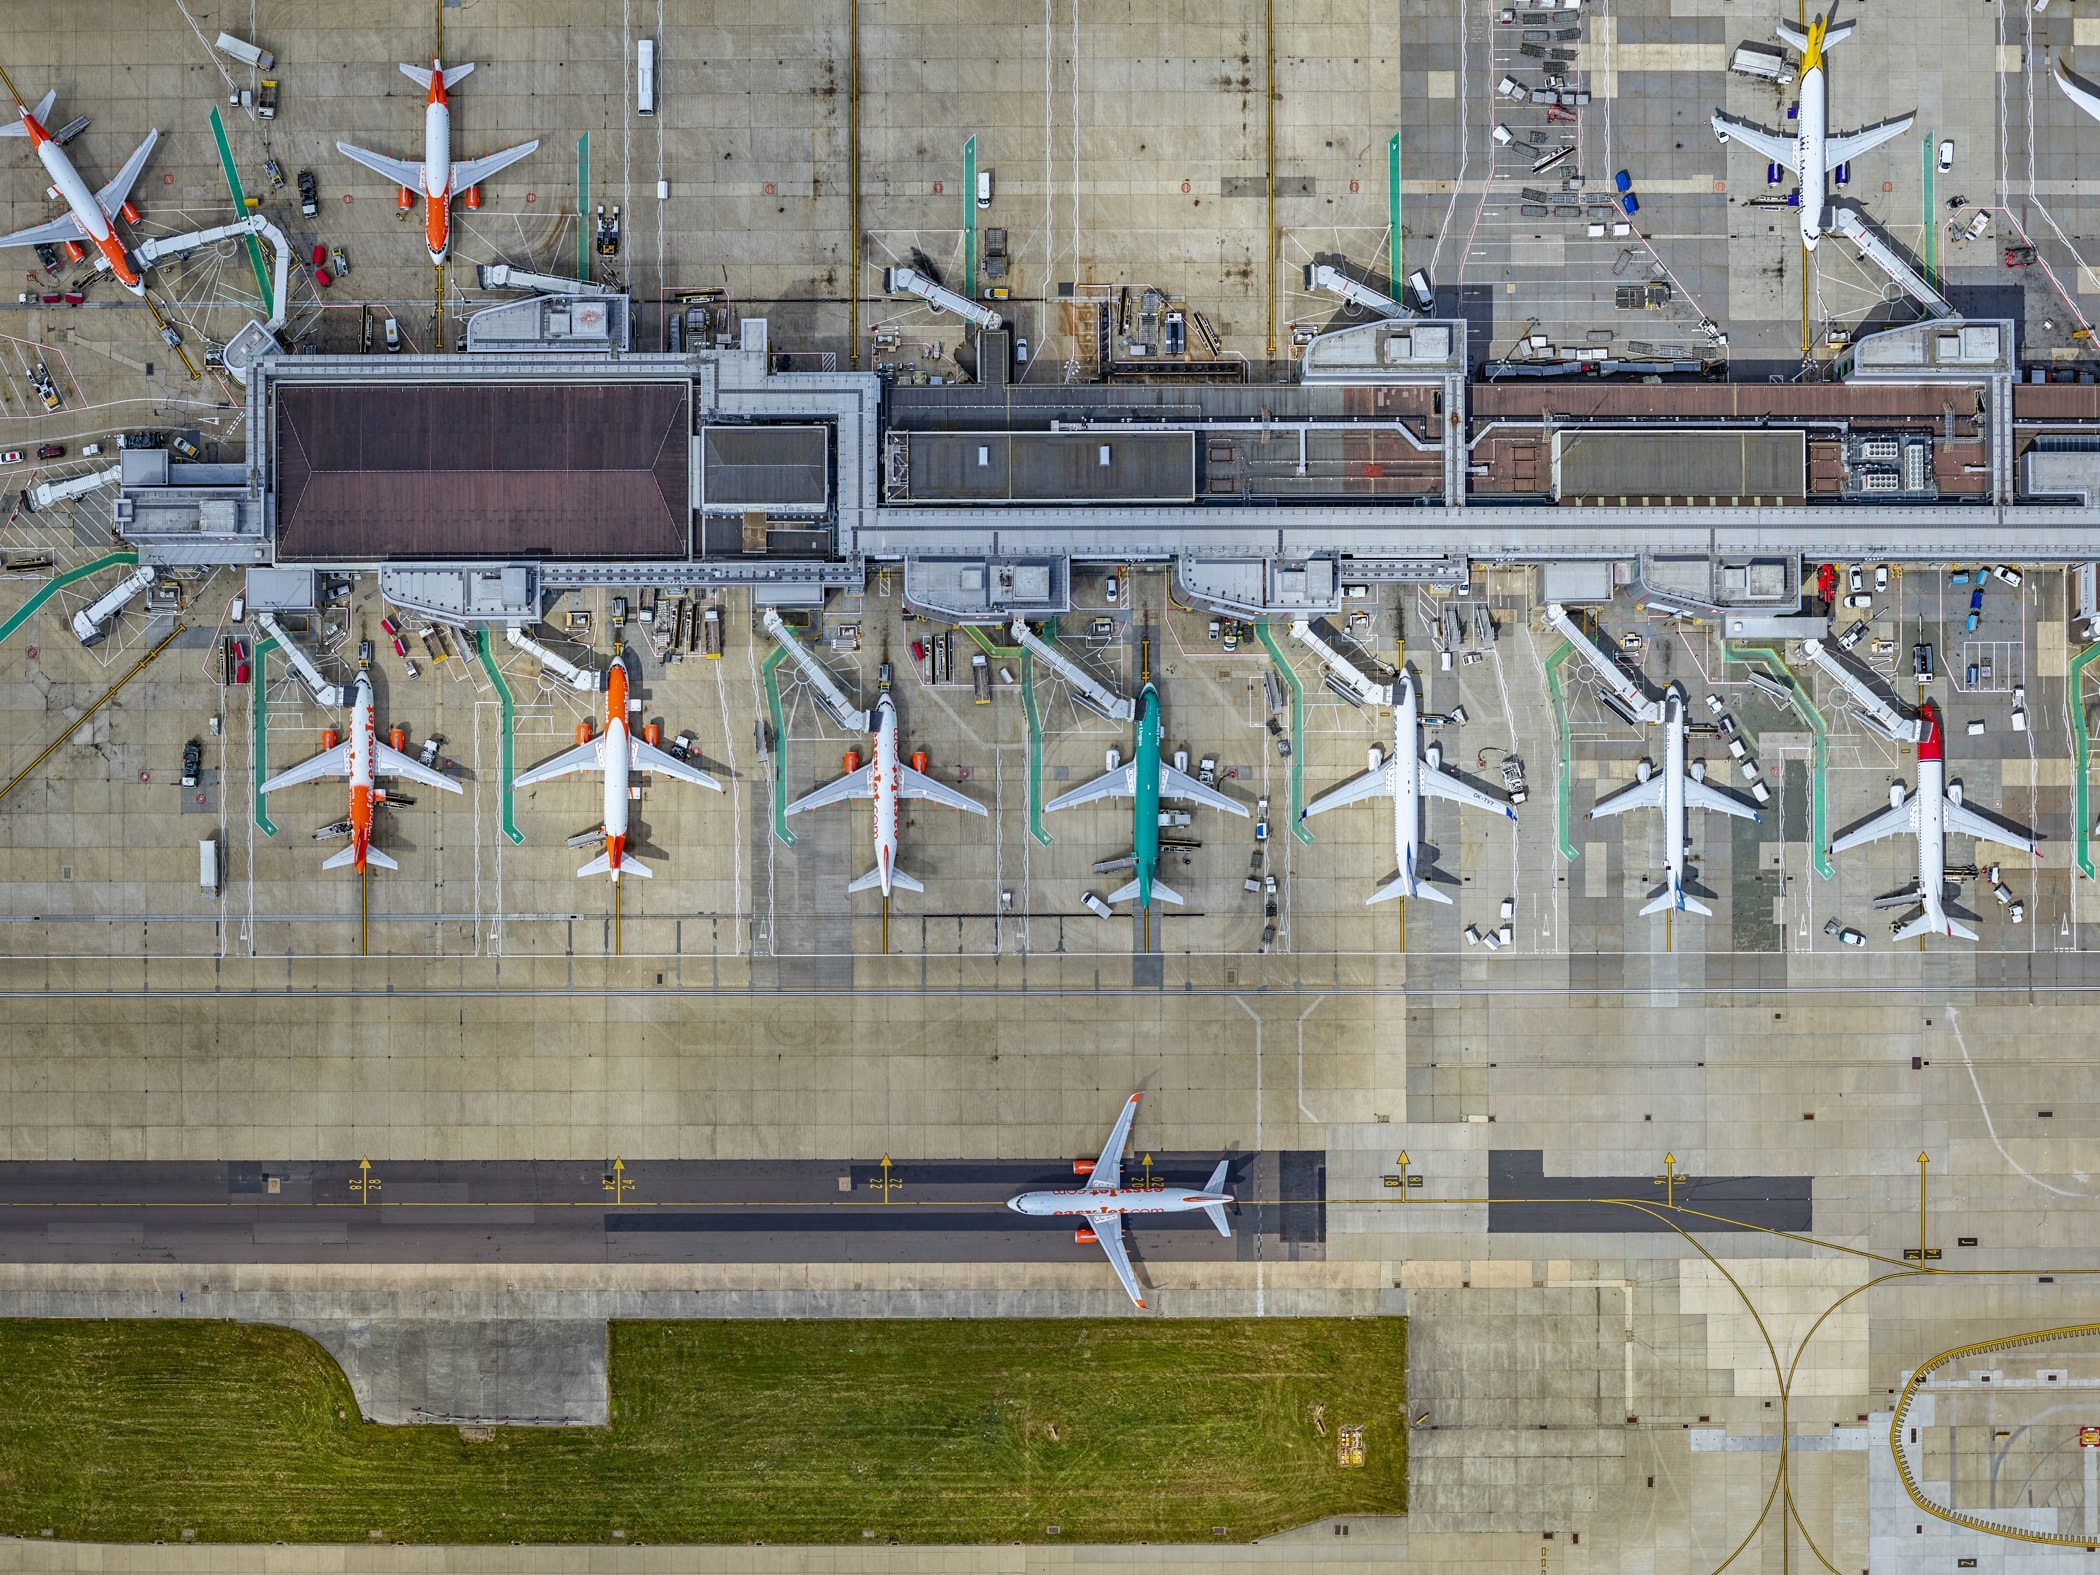 Gatwick Airport, London. Credit: J Milstein